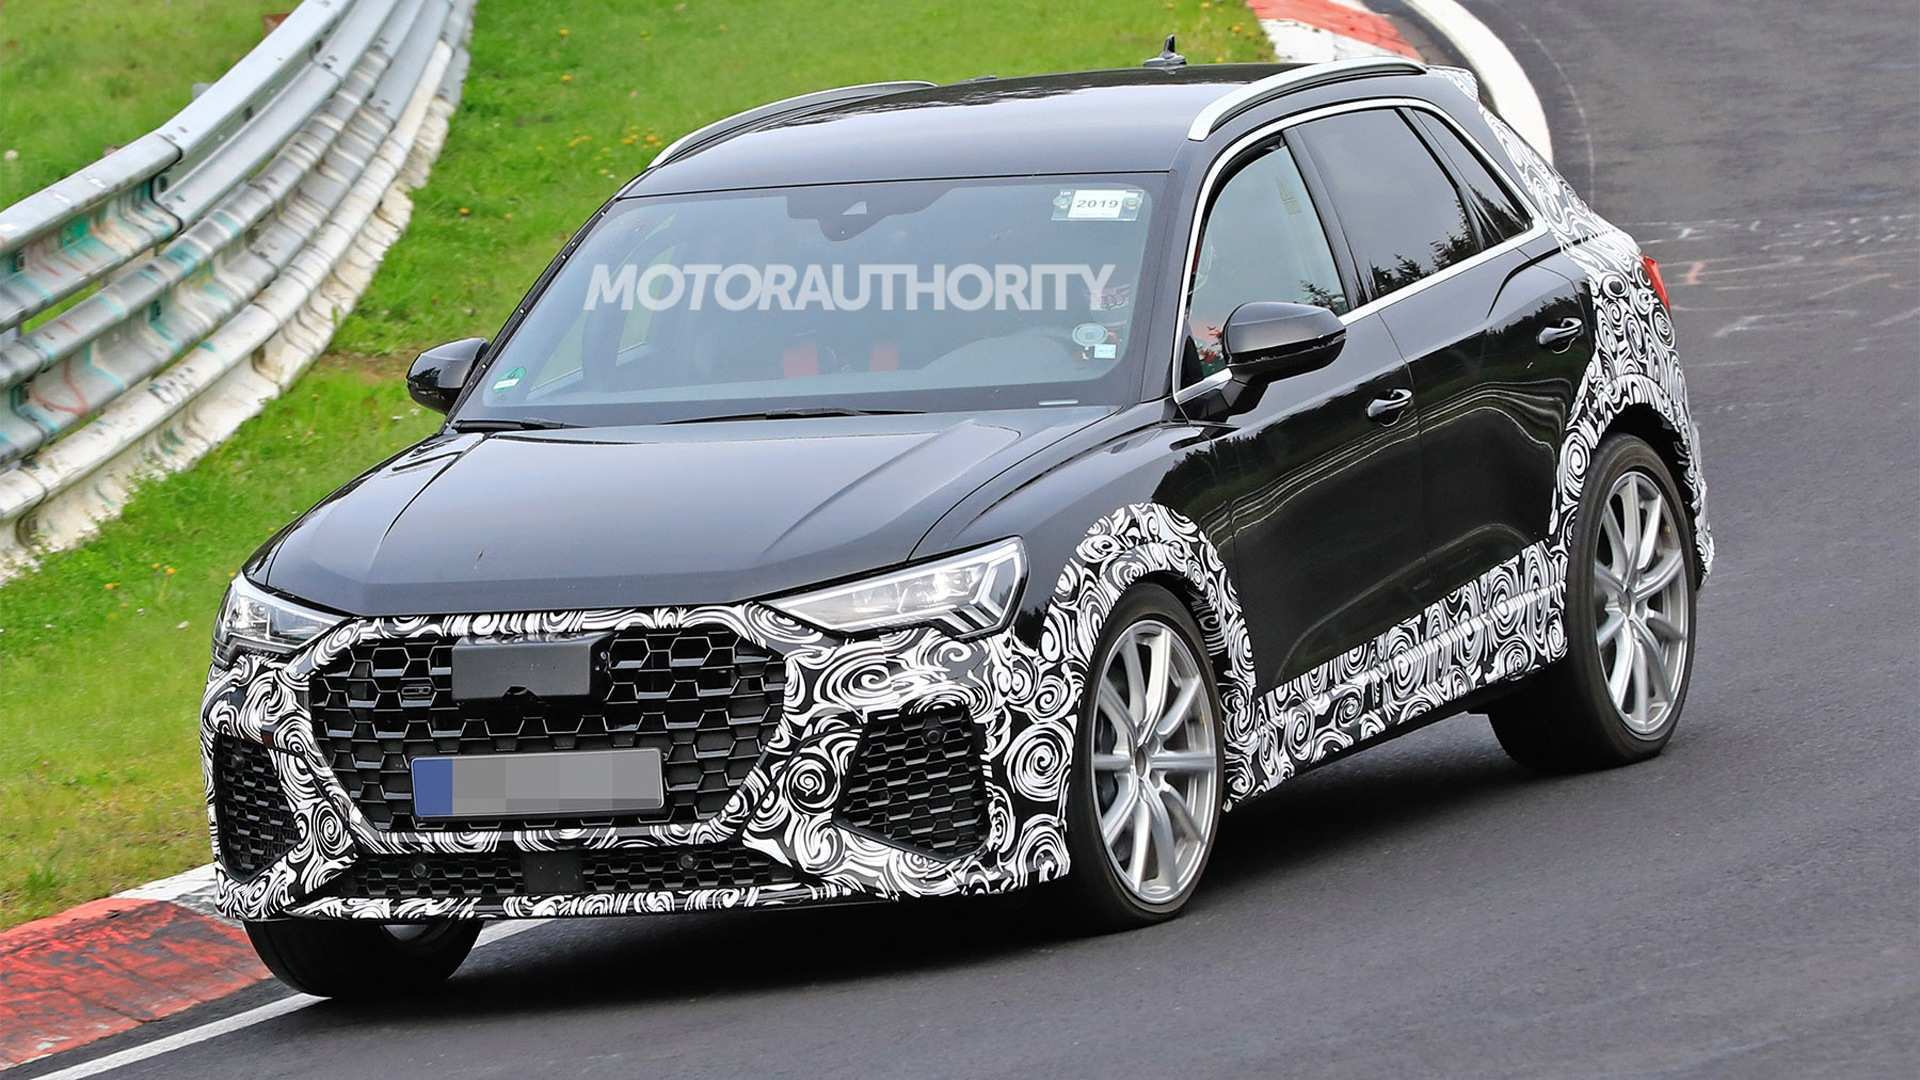 67 All New Audi Rsq3 2020 Style